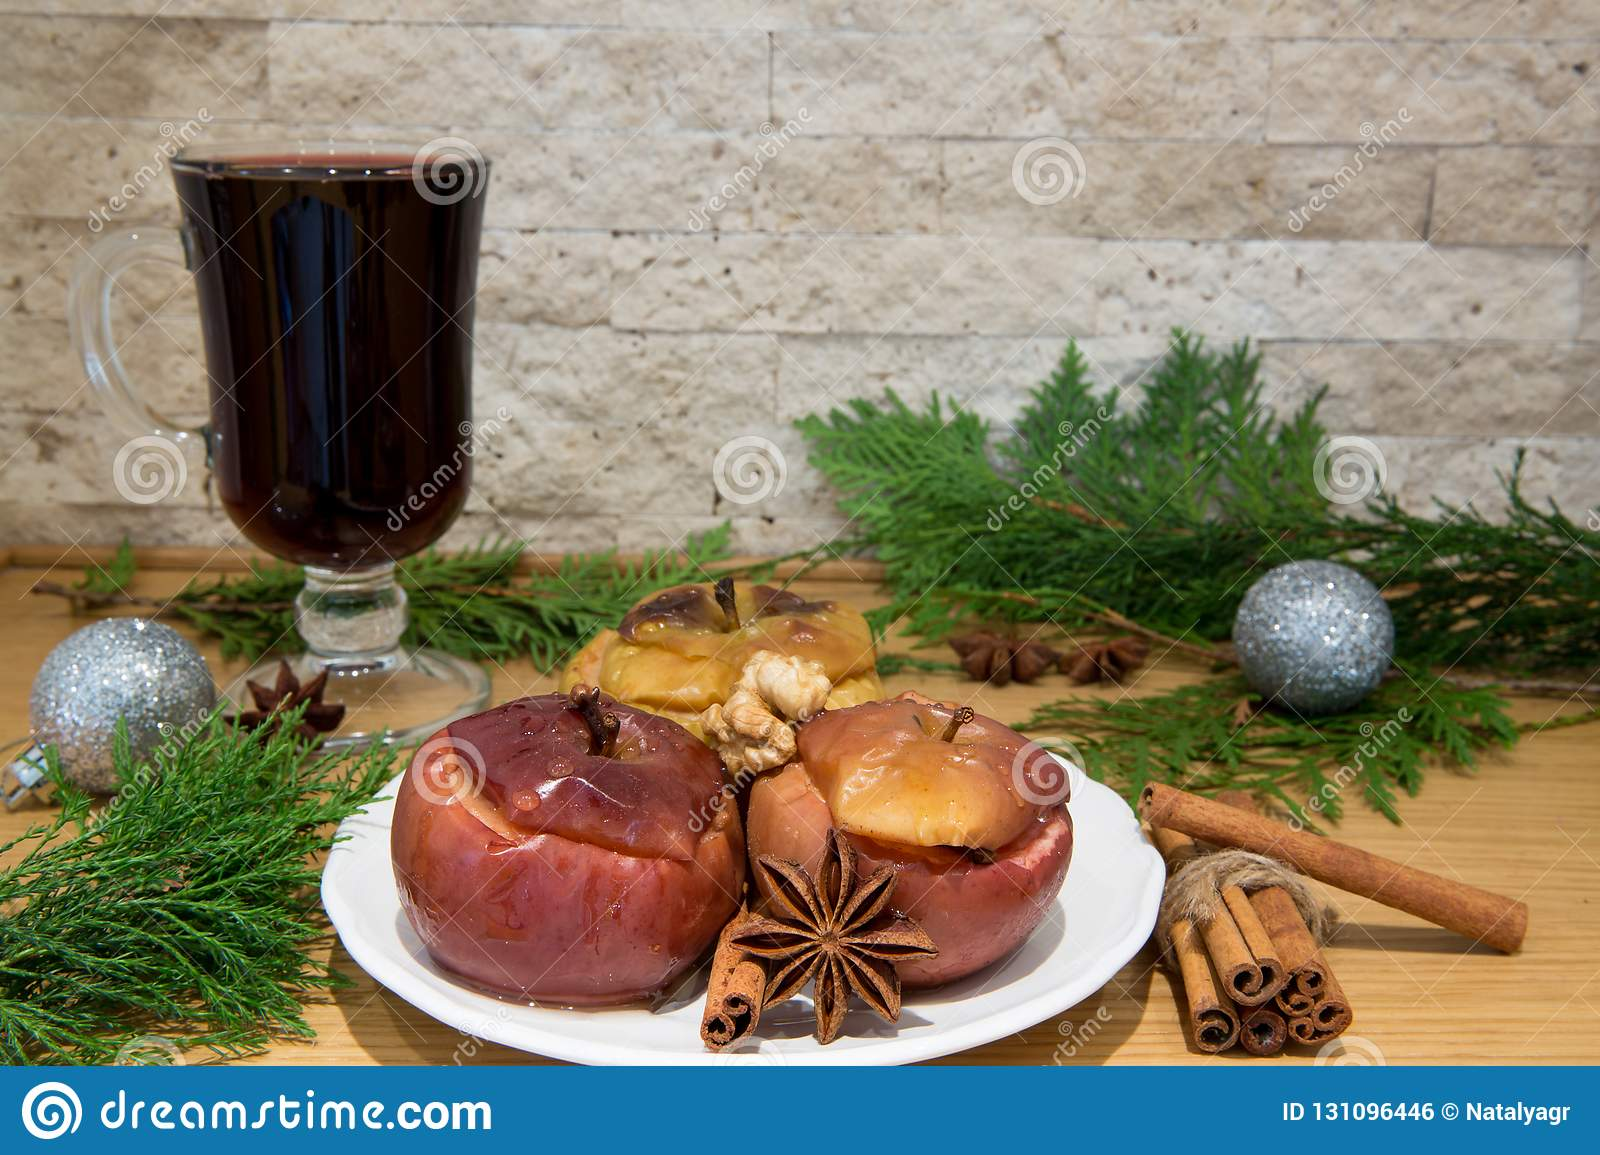 Red mulled wine and bake apples. Silver Christmas balls decoration.